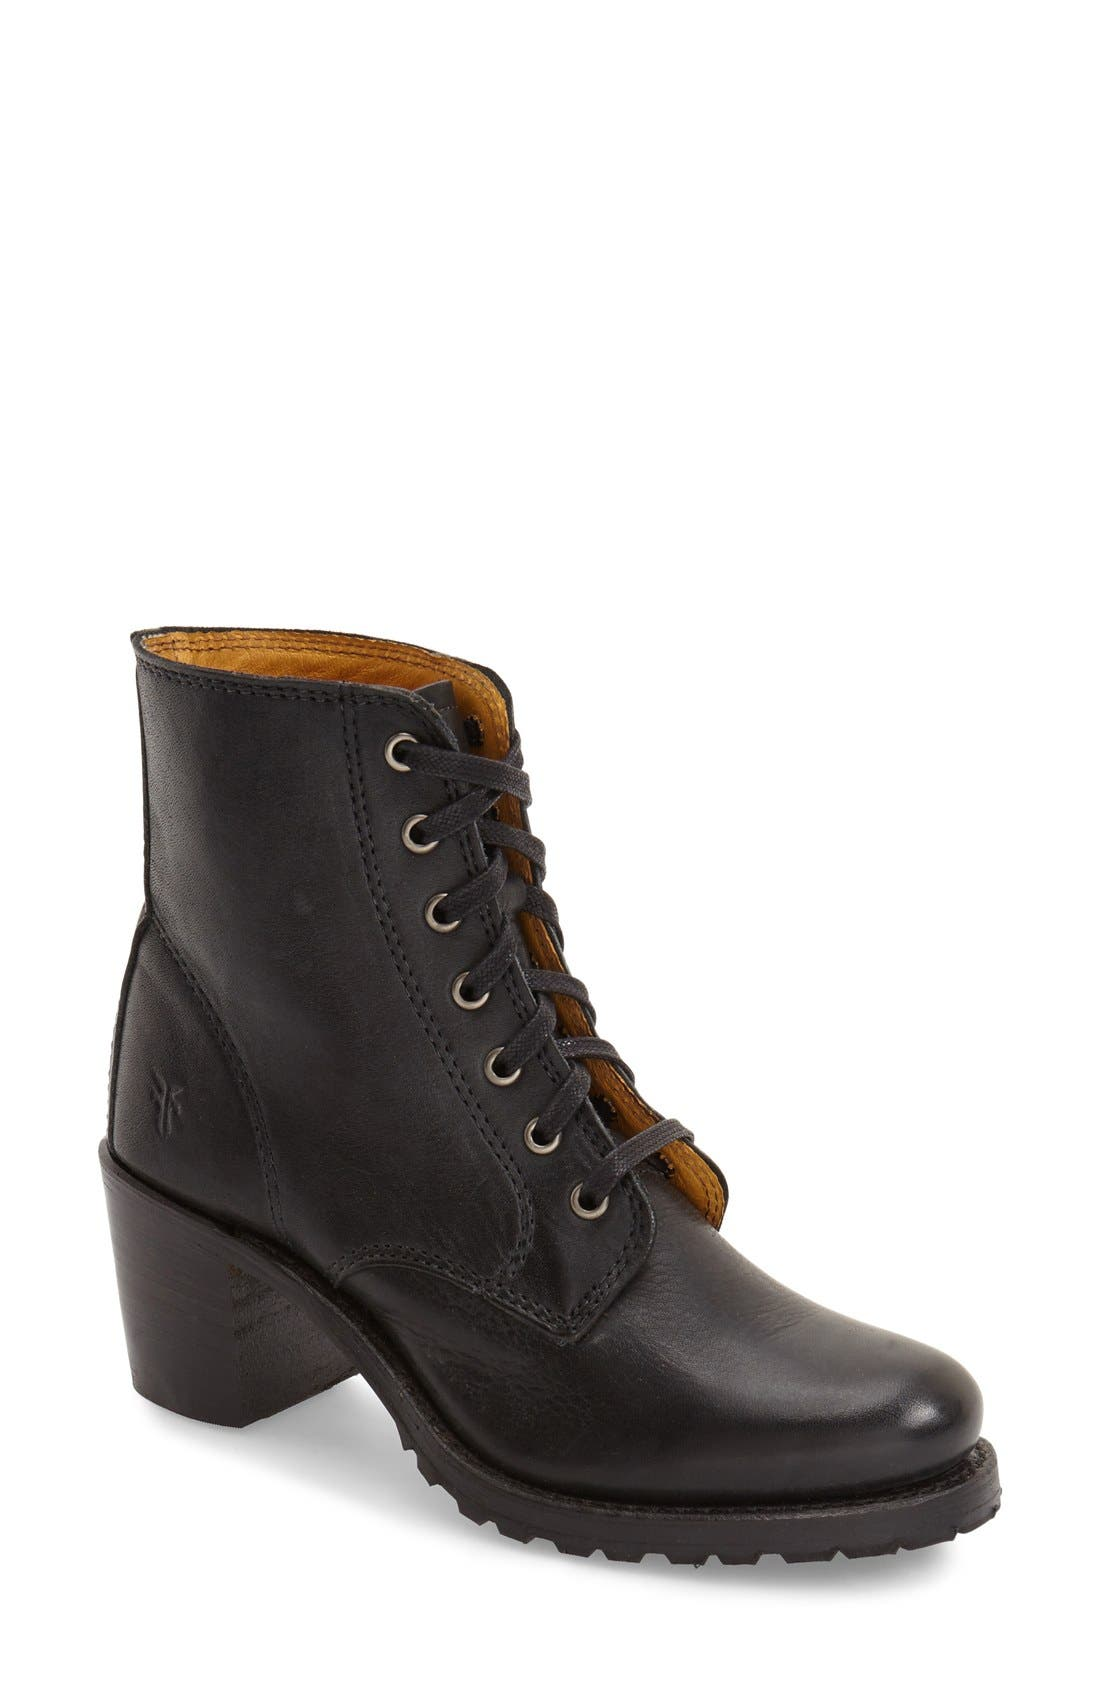 'Sabrina' Boot,                         Main,                         color, Black